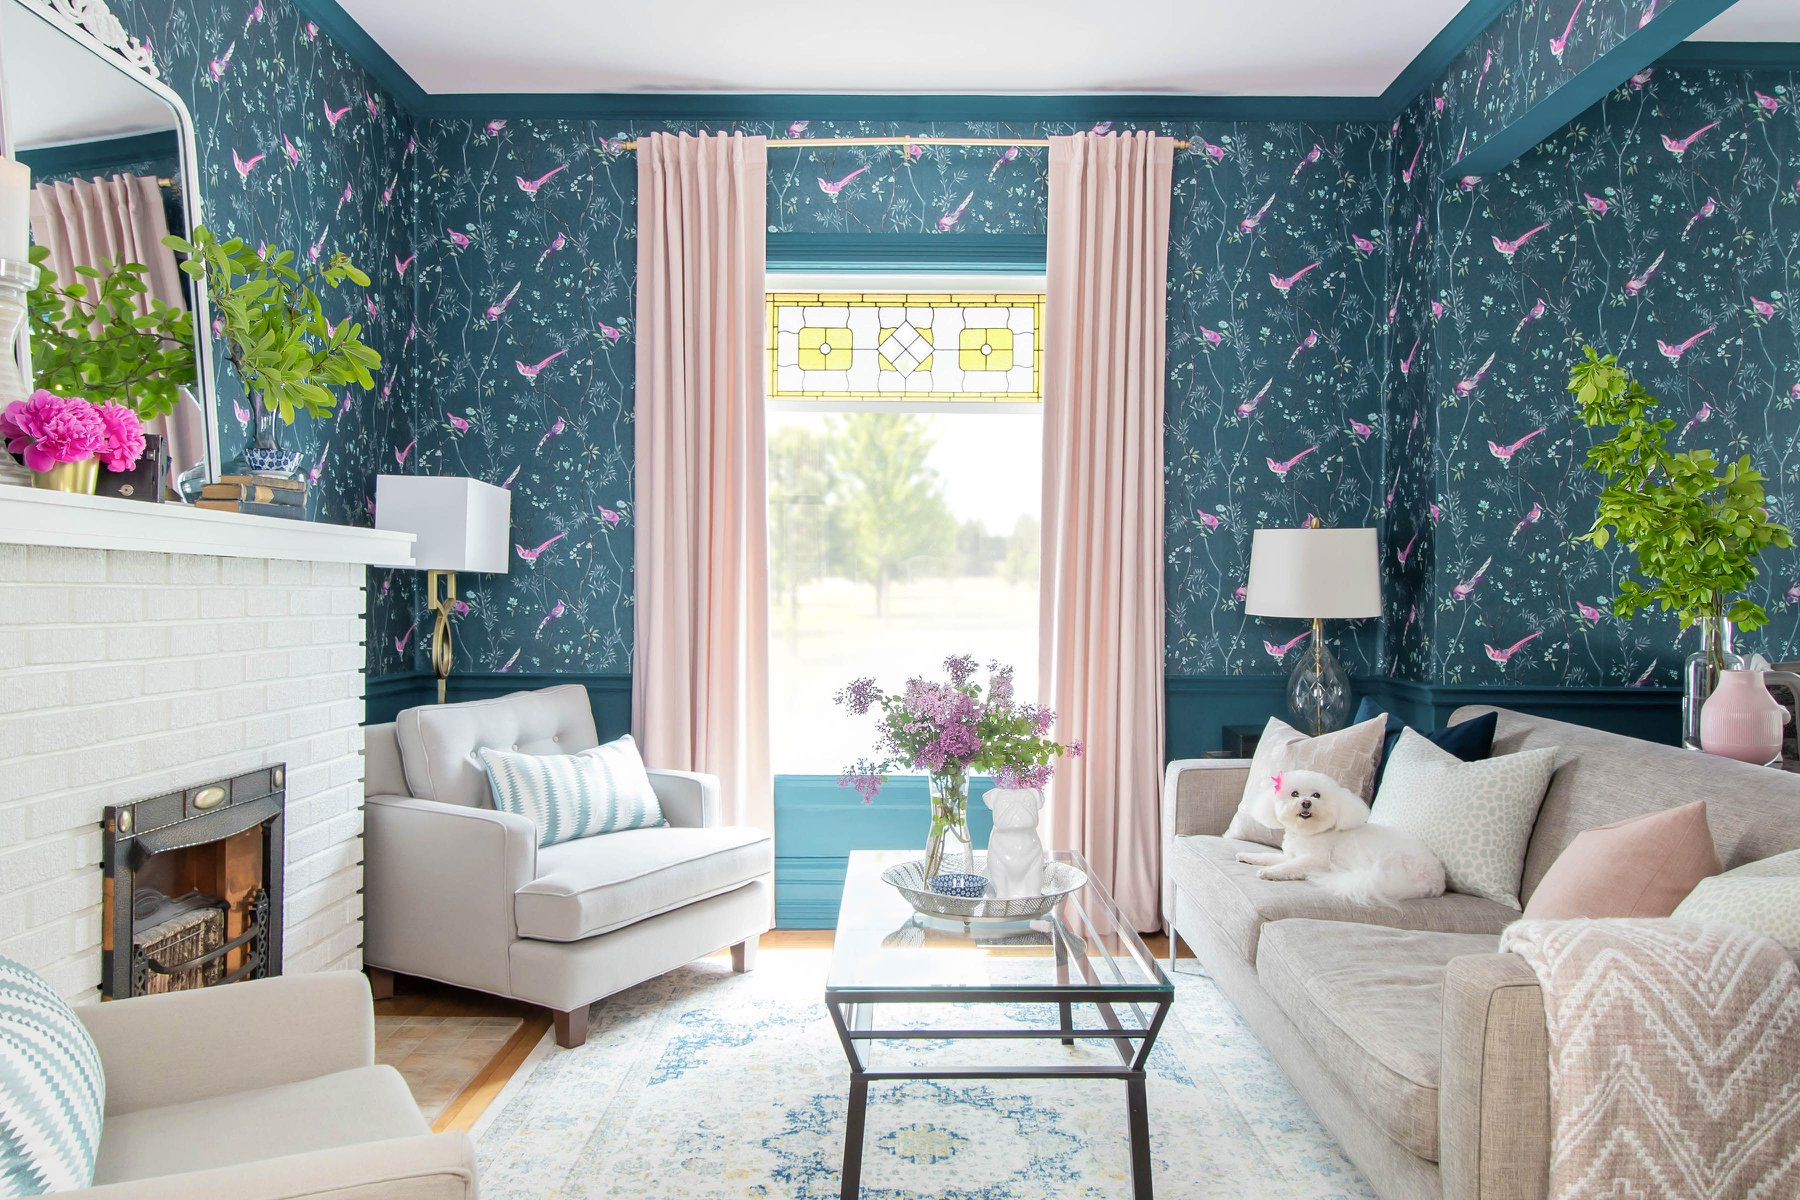 Interior designer tackles living room in her old Victorian located in Windsor